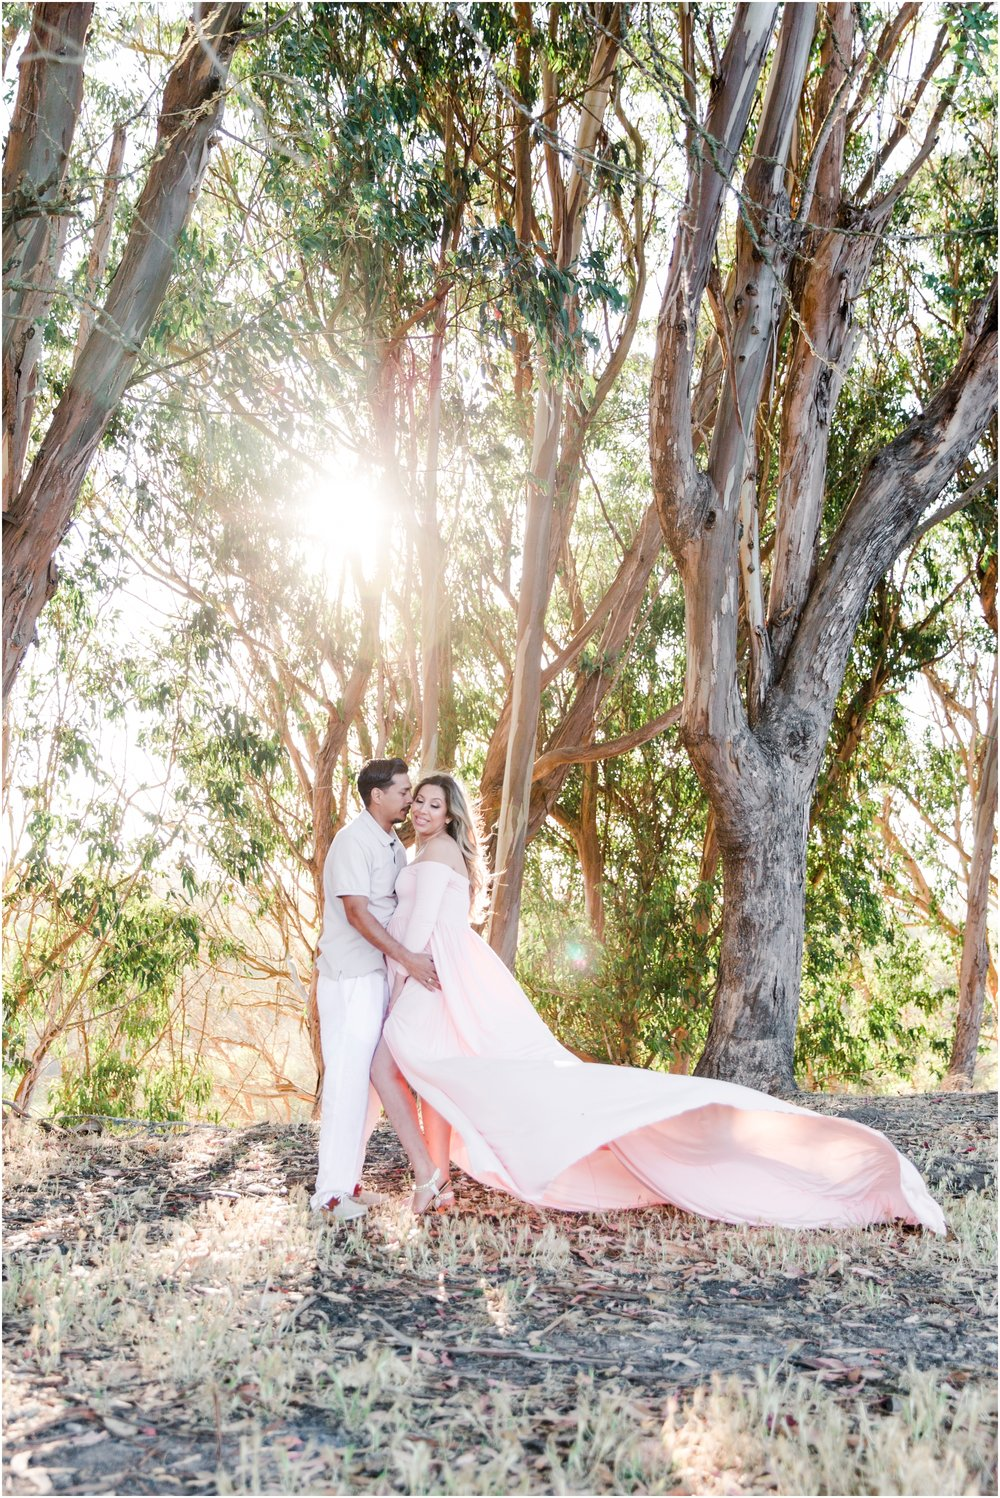 Natural Bridges maternity pictures by Briana Calderon Photography_1771.jpg